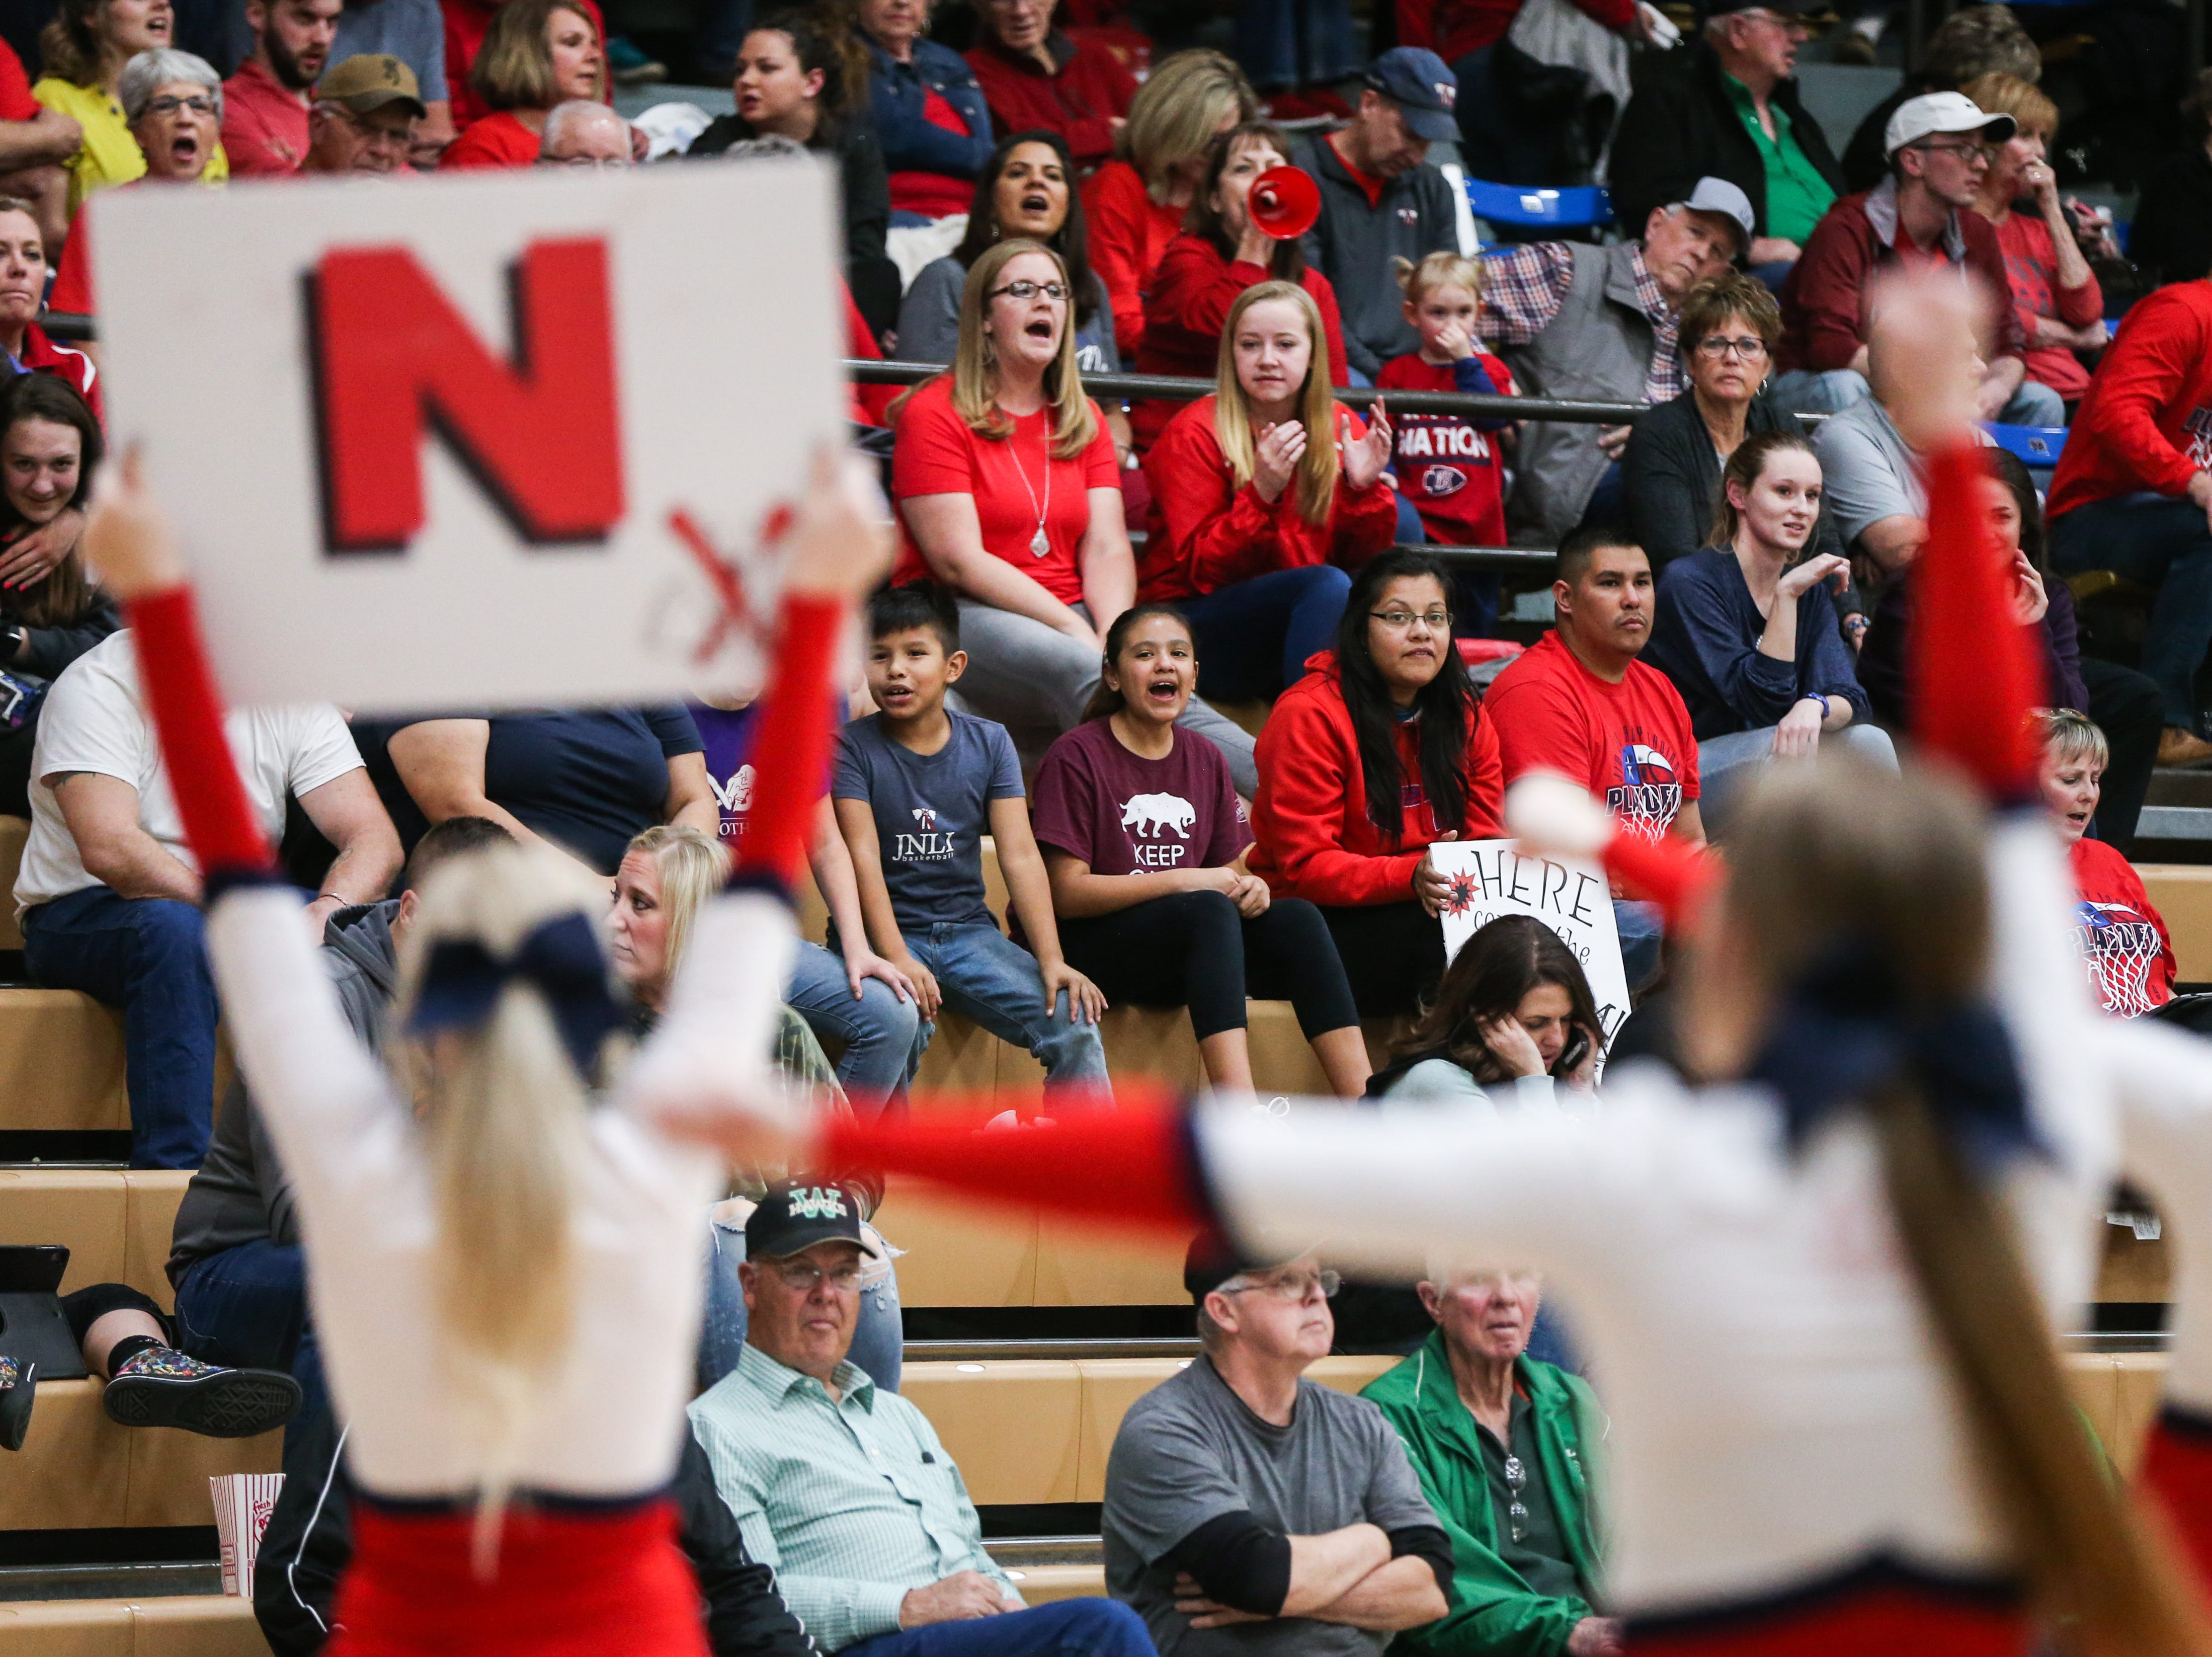 Jim Ned's cheer gets the fans going during the I-3A regional tournament against Idalou Friday, Feb. 22, 2019, at Wayland Baptist University in Plainview.